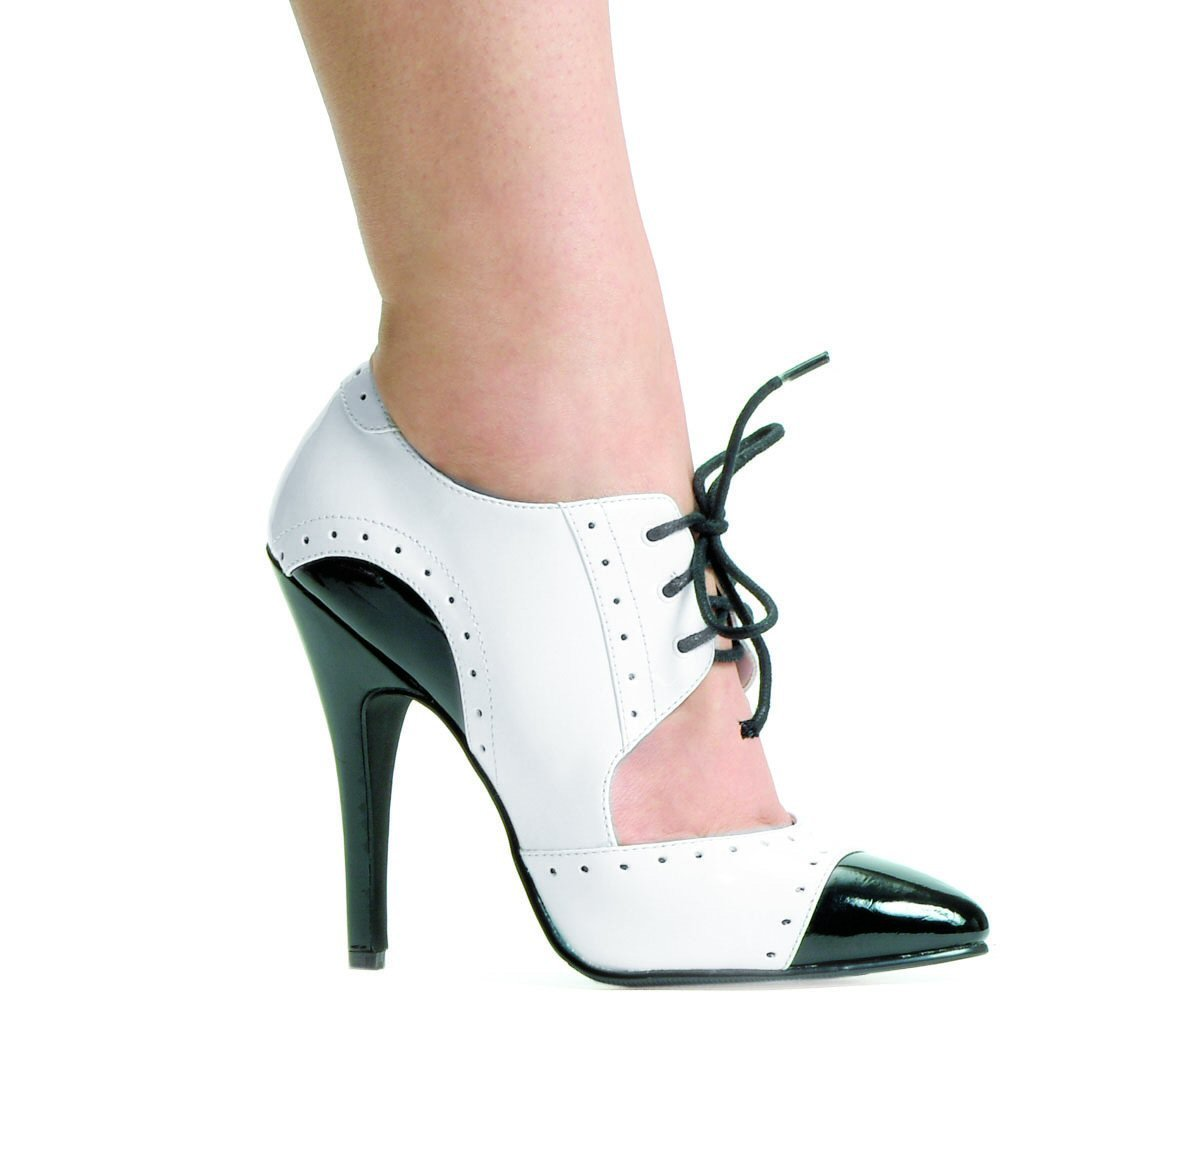 Ellie 511-Gangster women's pointy toe oxford pumps 5 inch heels white/black size 10